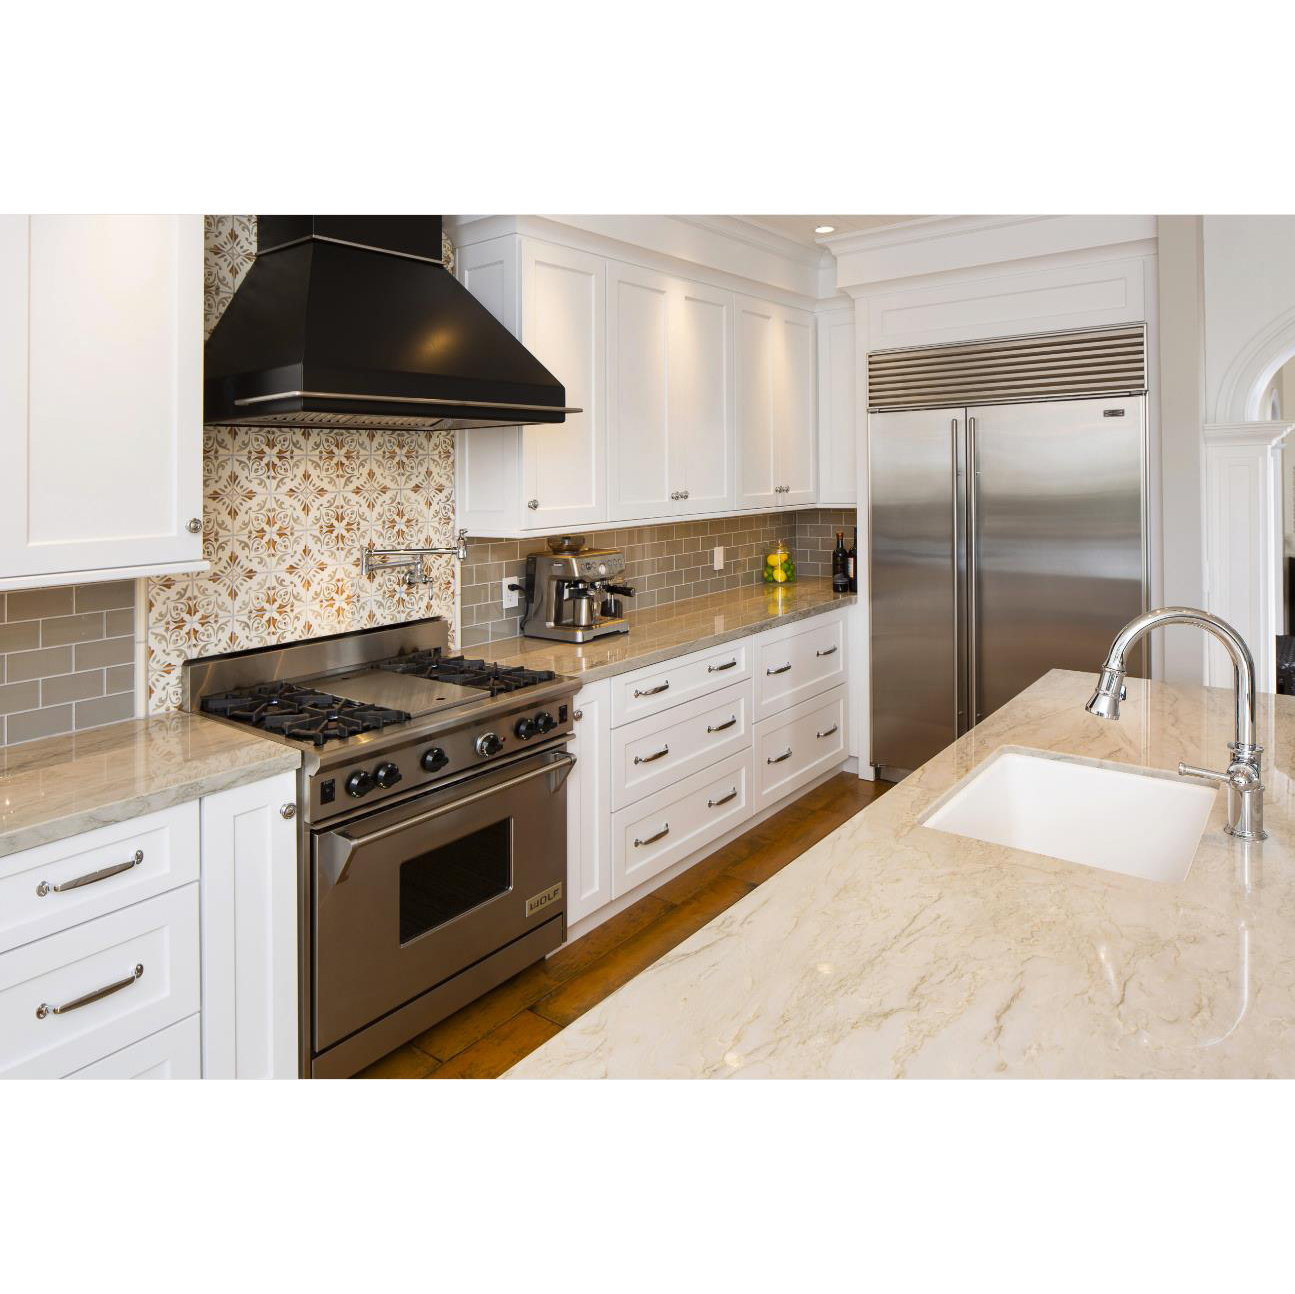 AisDecor white lacquer cabinets from China-1